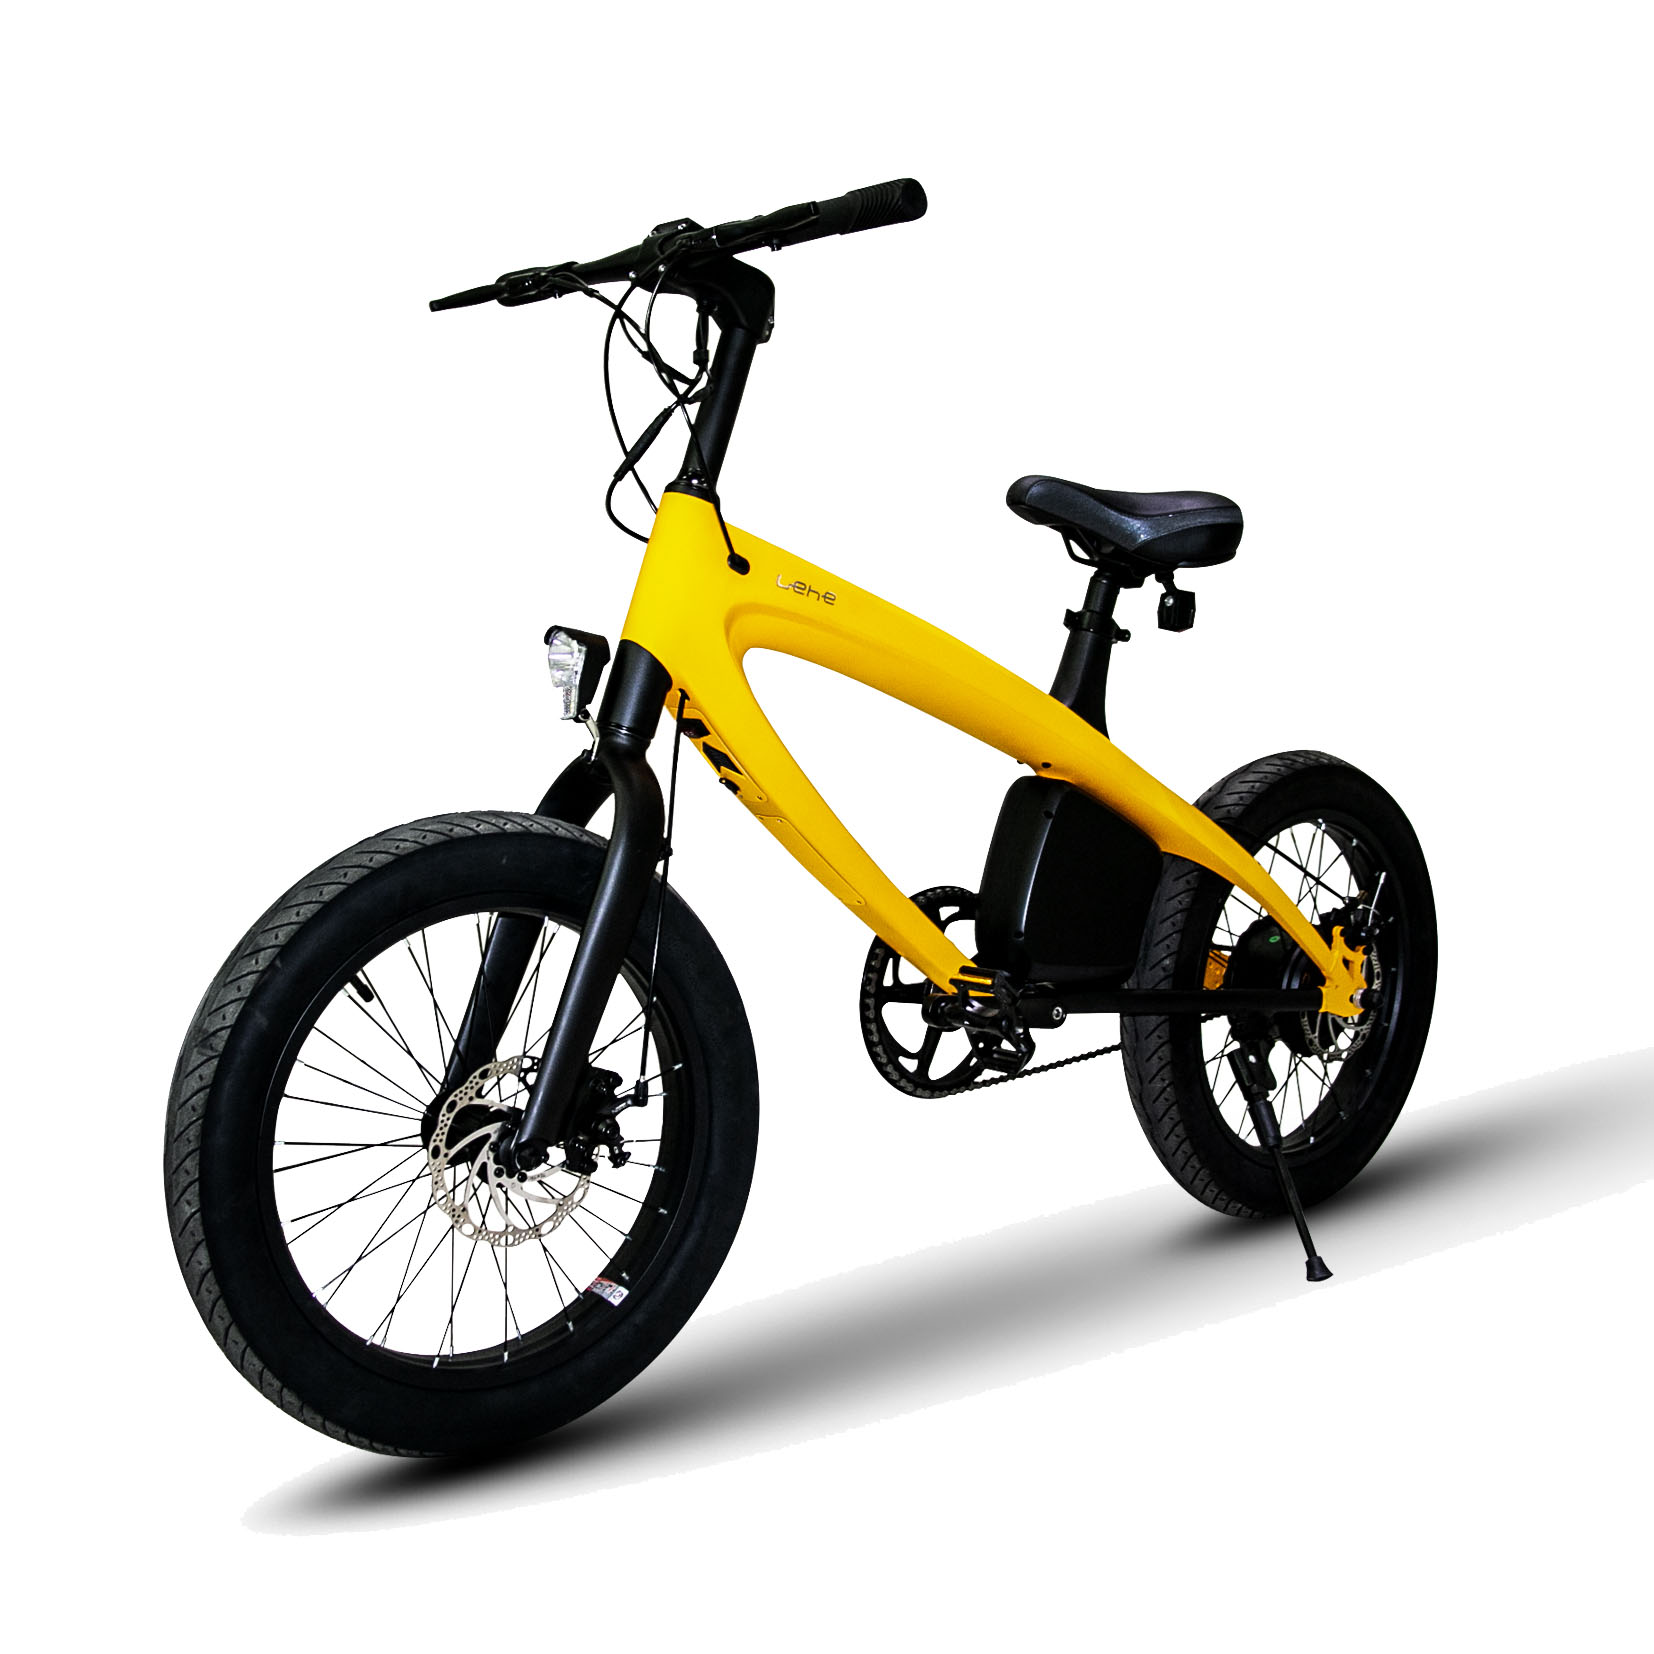 LEHE S2 electric bike